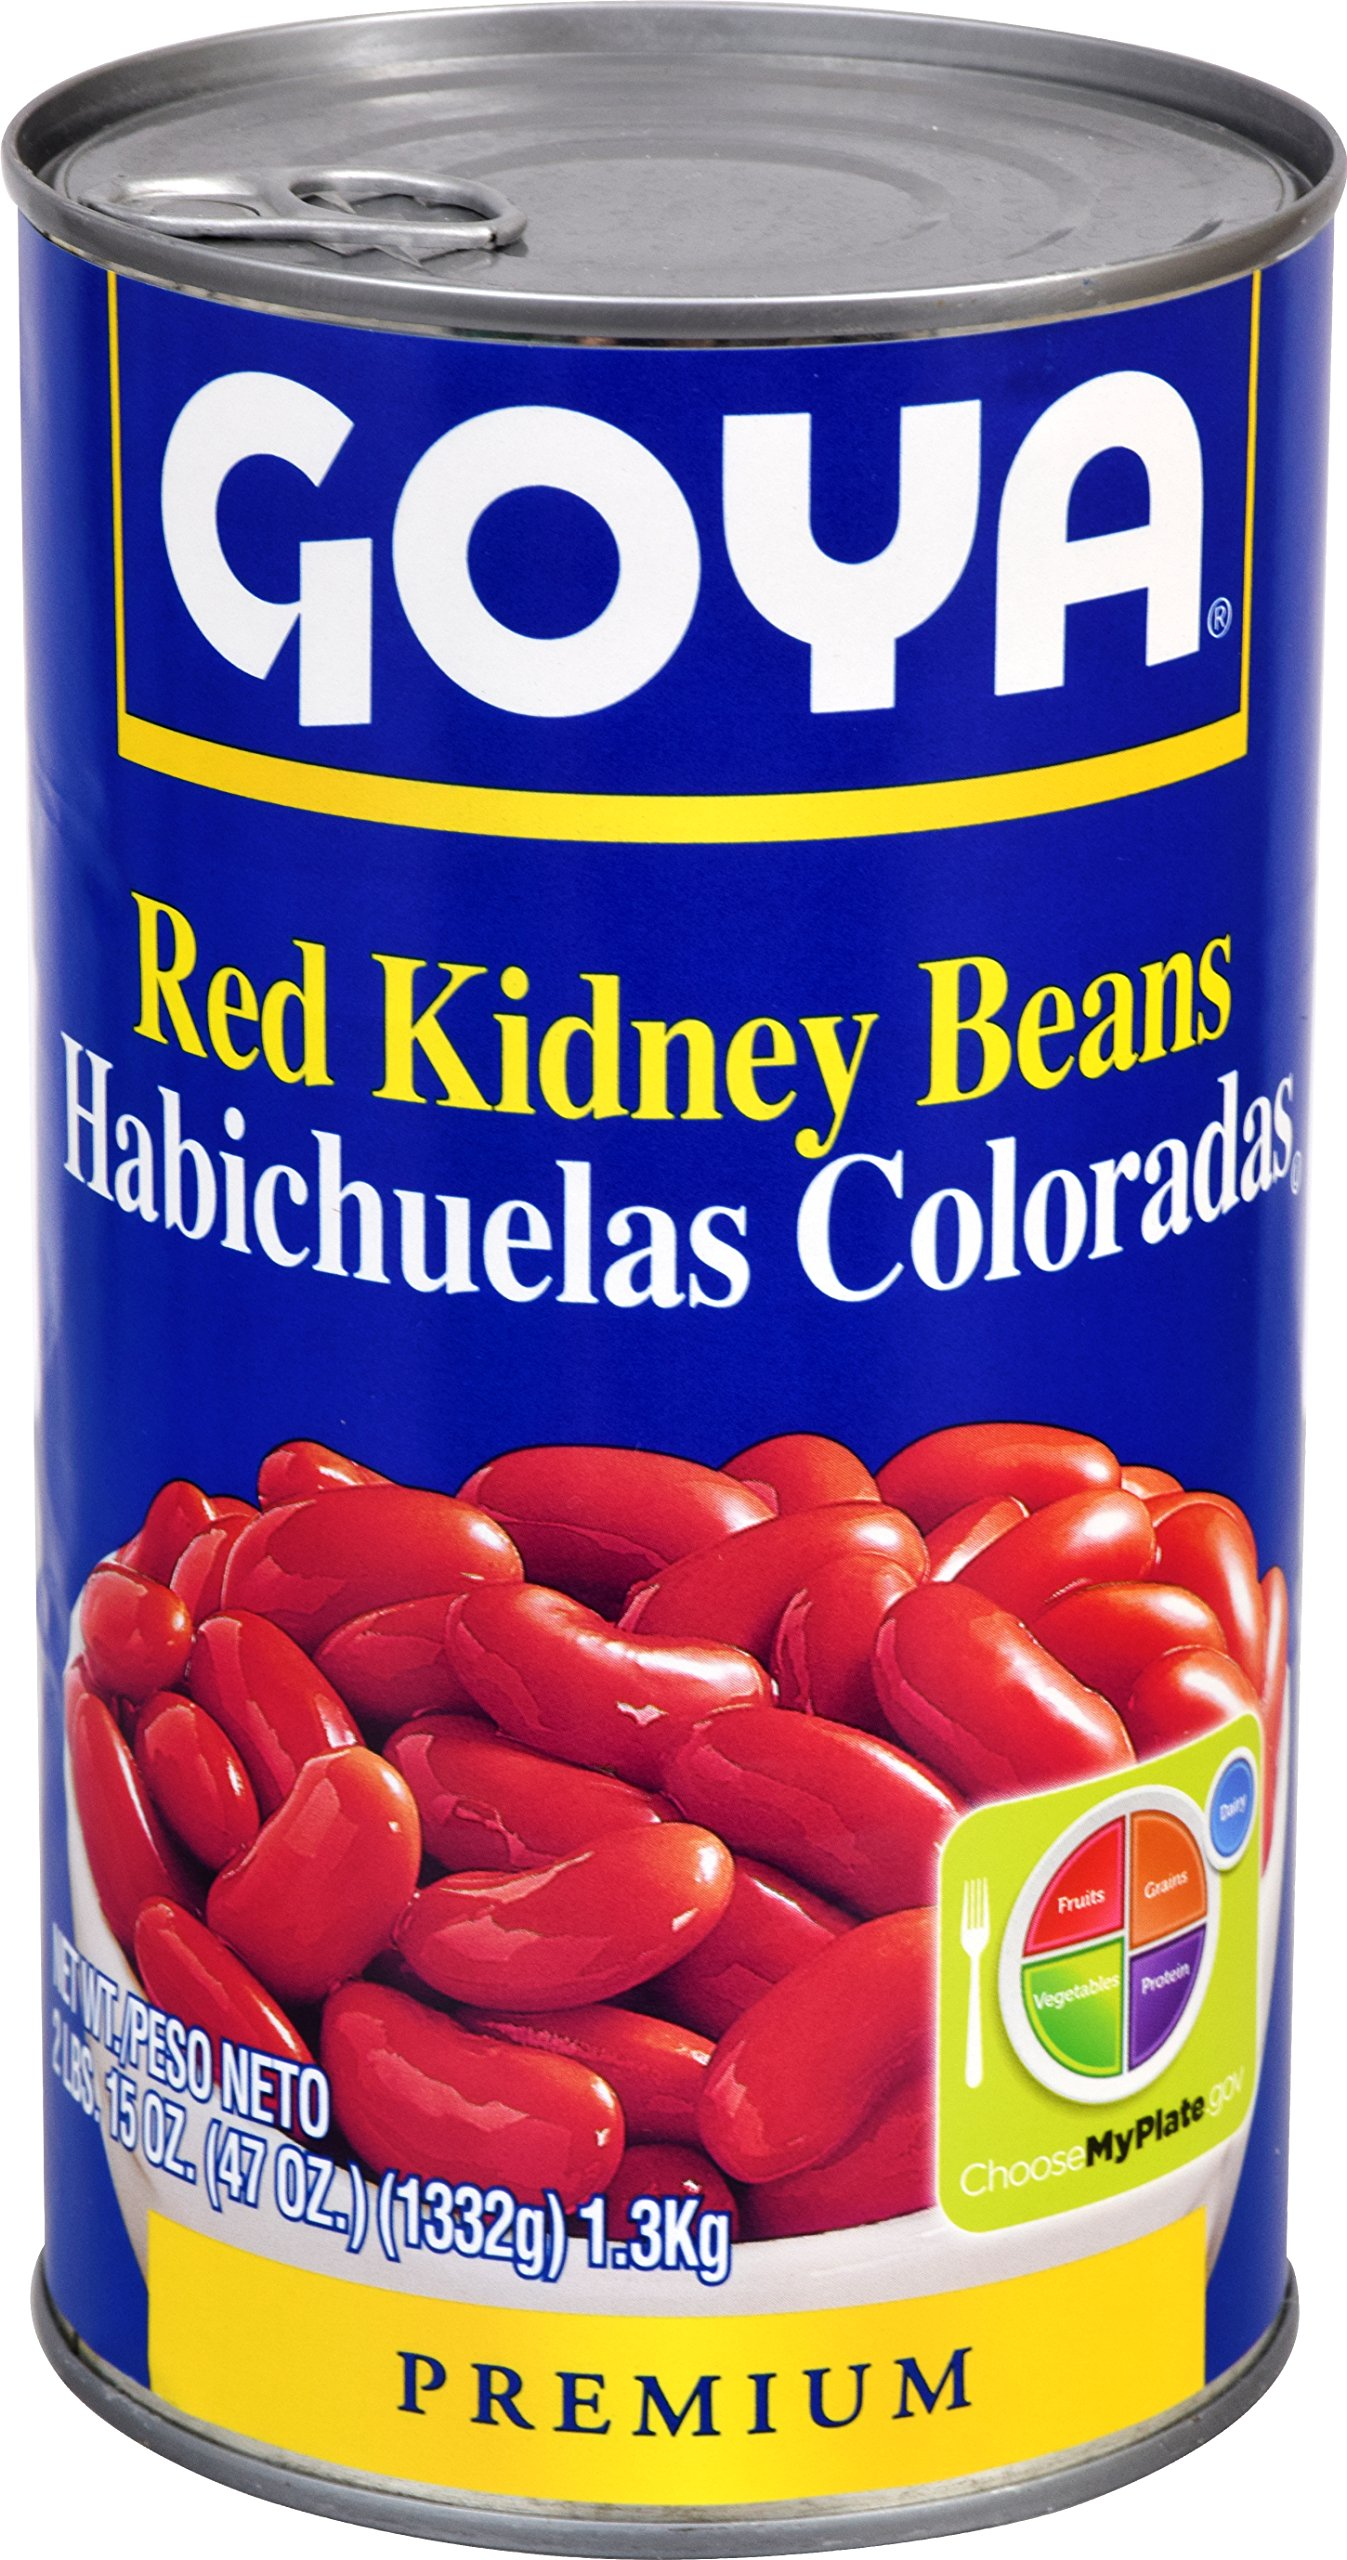 Goya Foods Red Kidney Beans, 47 Ounce (Pack of 12)